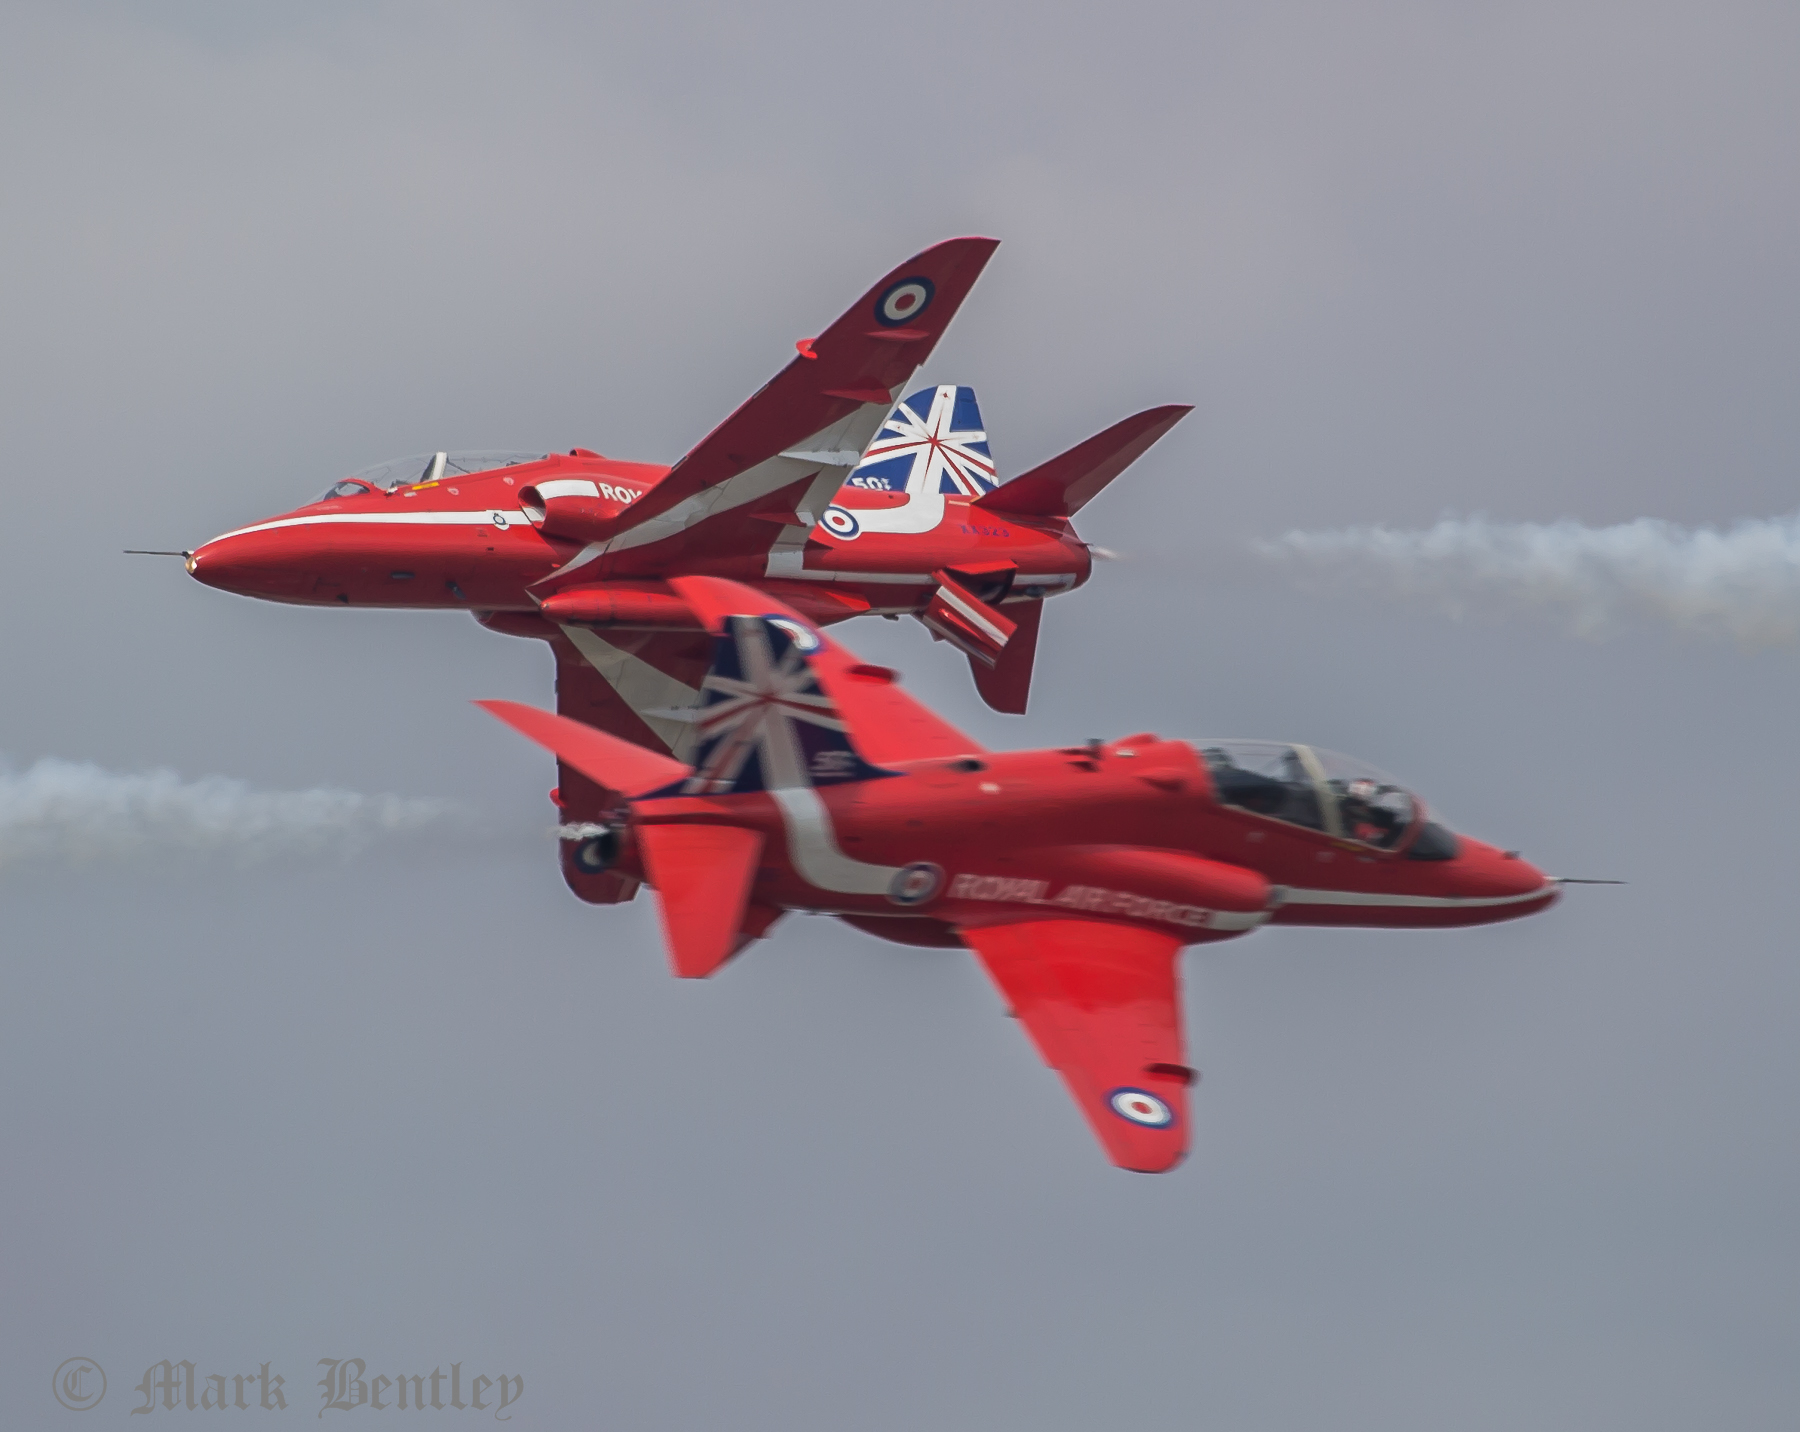 A015 Red Arrows